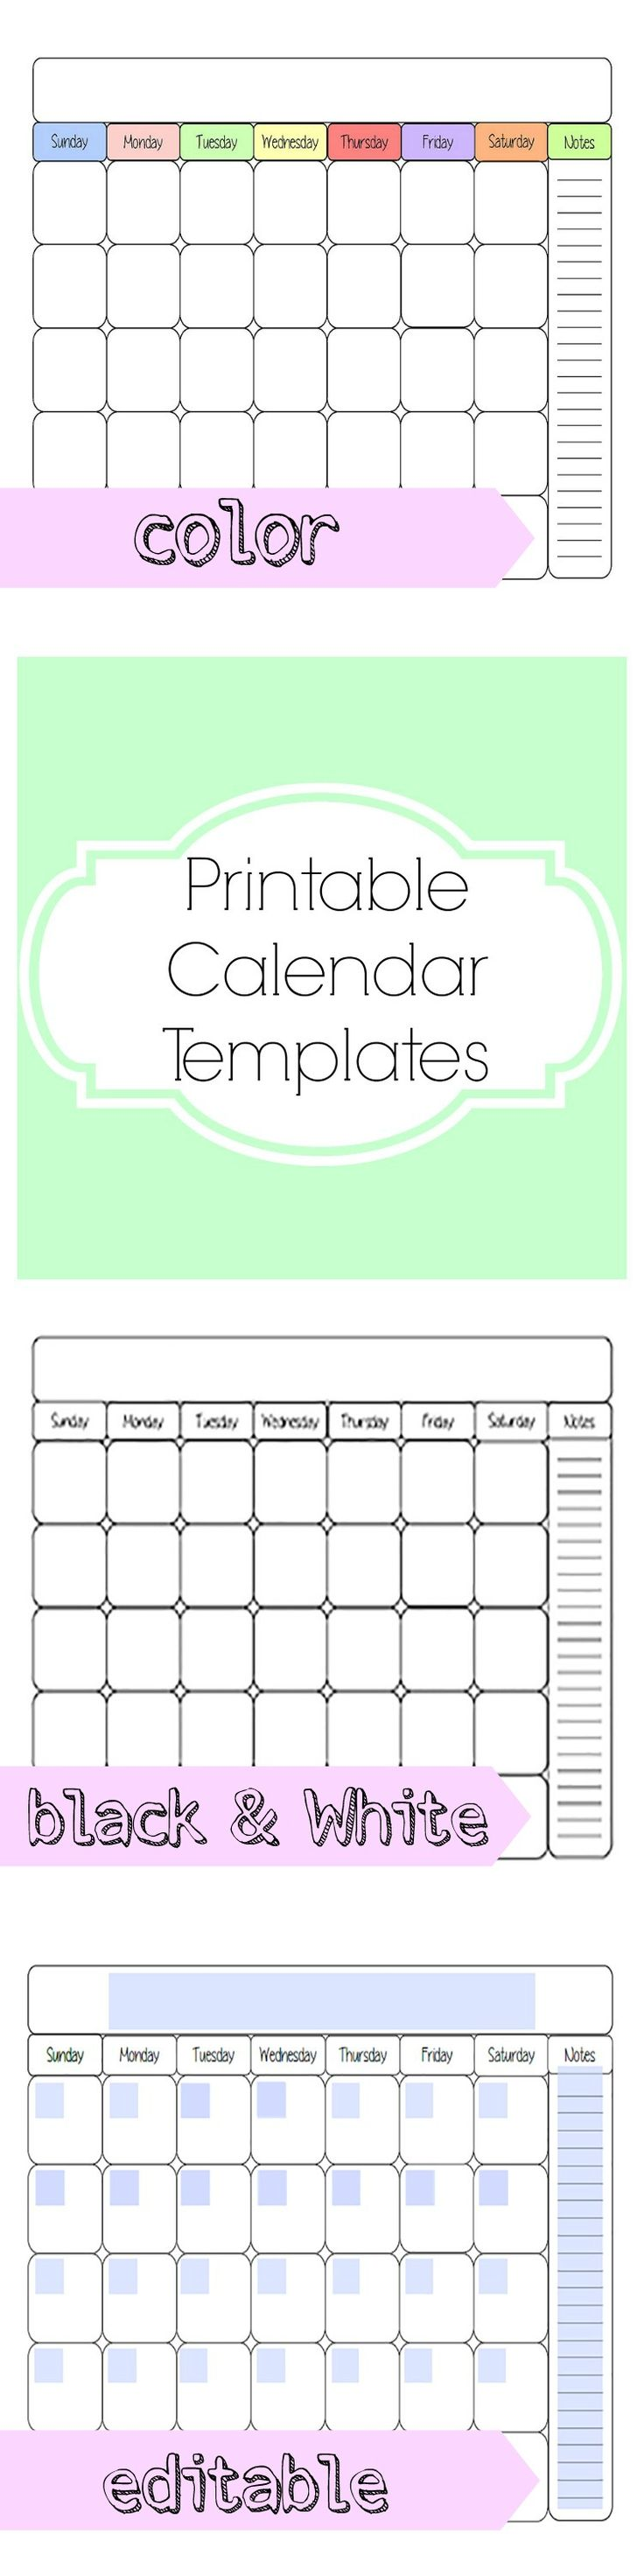 Diy Calendar Template : Best ideas about printable calendars on pinterest